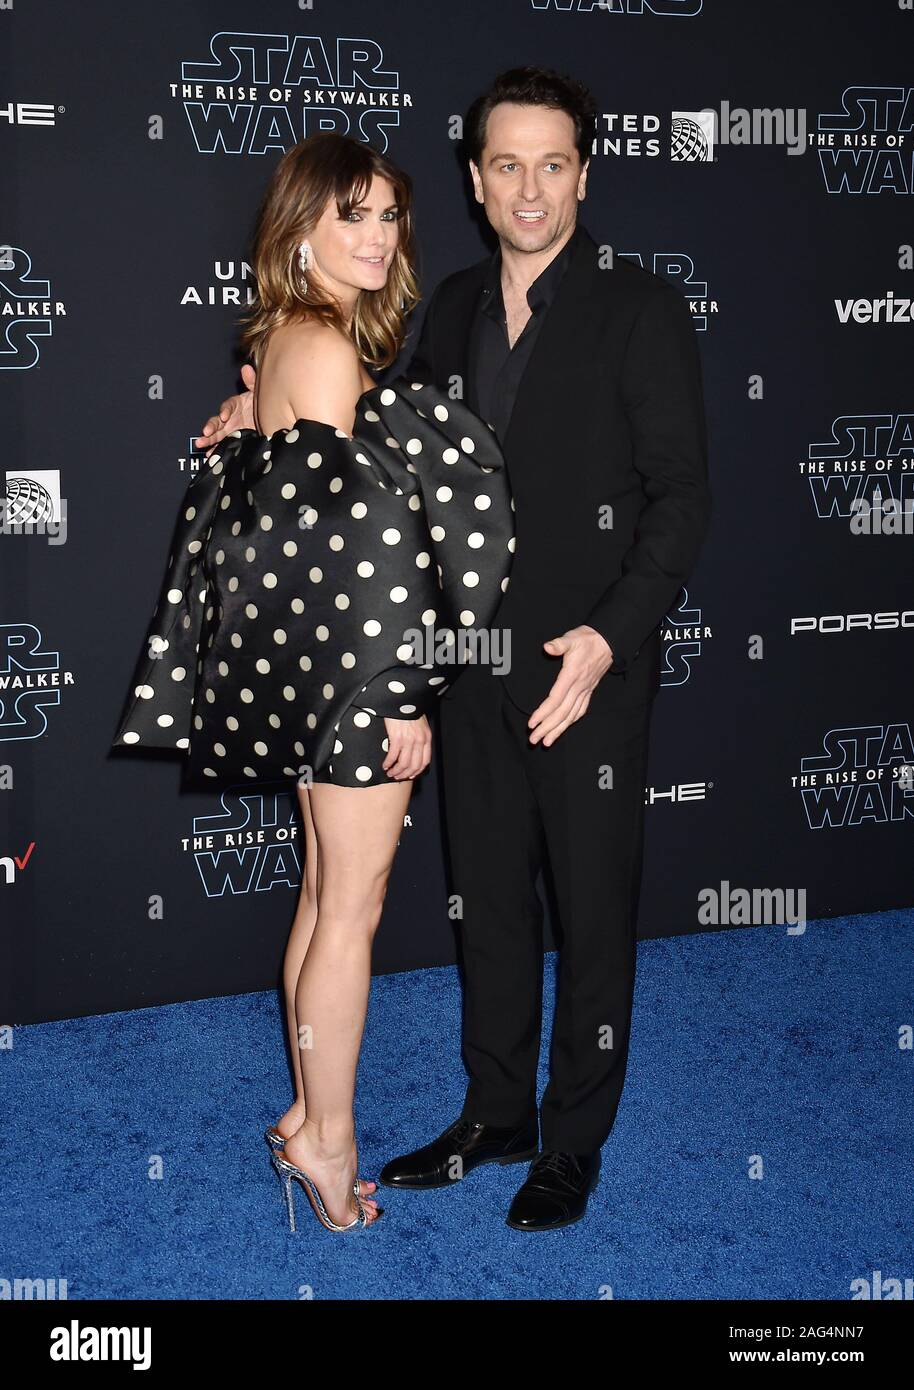 Hollywood Ca December 16 Keri Russell L And Matthew Rhys Attend The Premiere Of Disney S Star